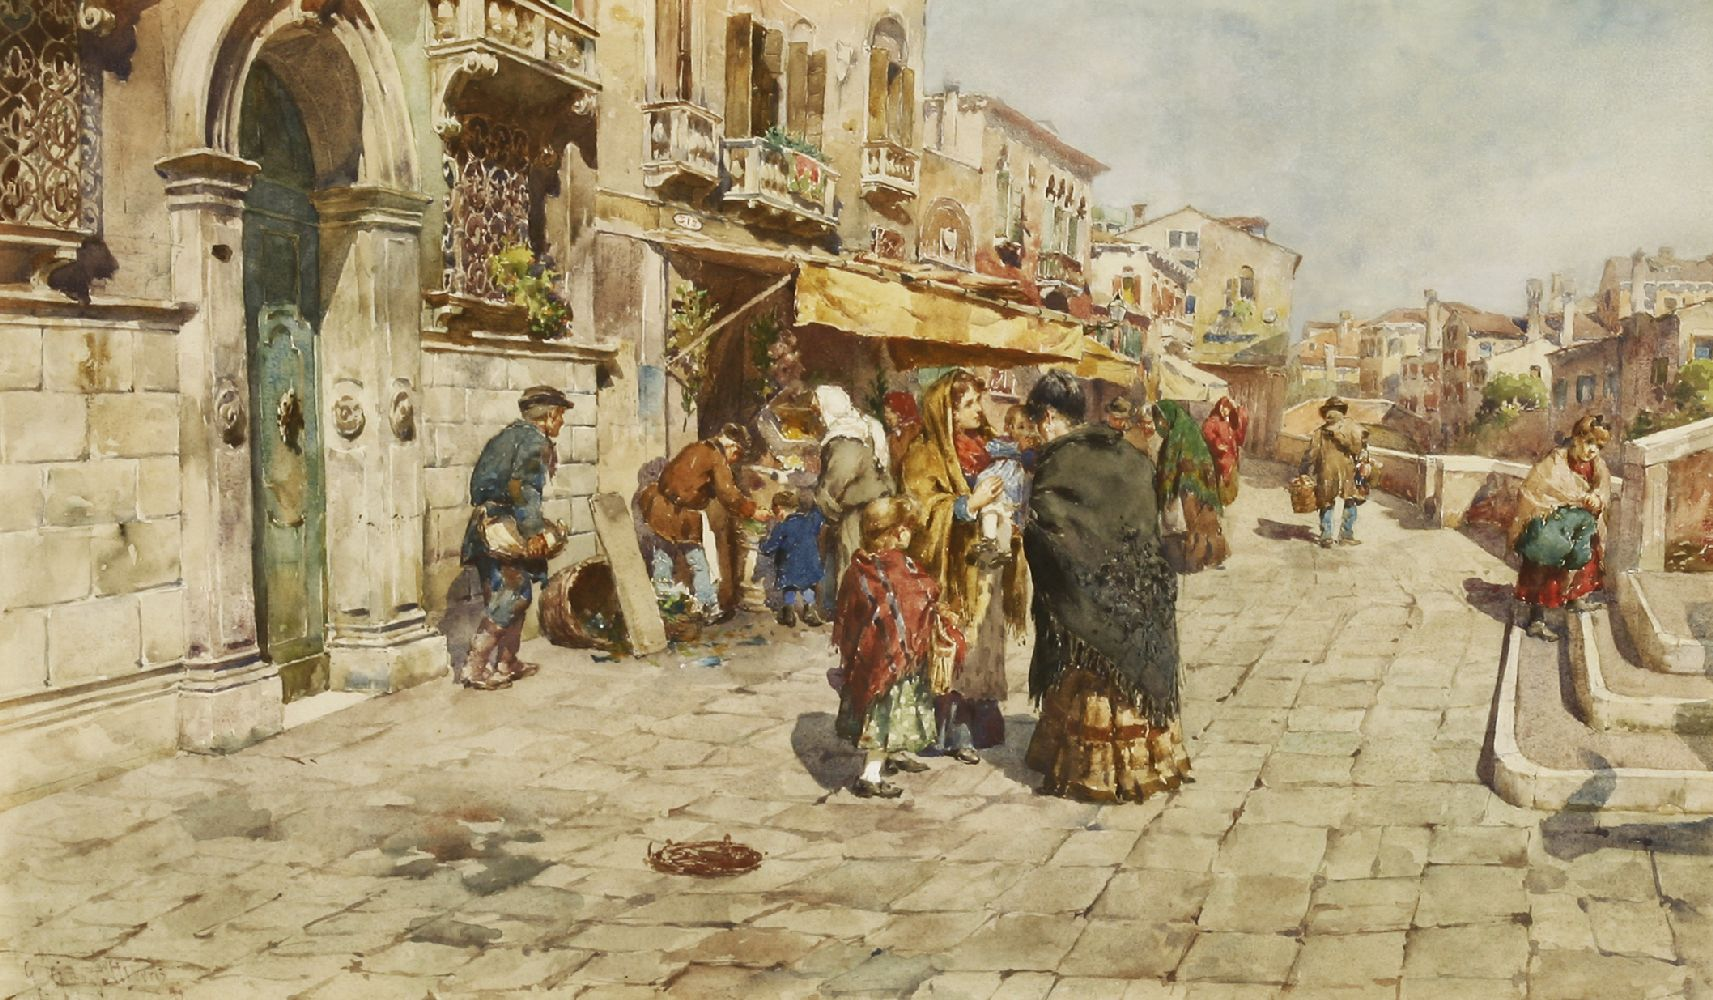 Giuseppe Vizzotto Alberti (Italian, 1862-1931)A MEETING BESIDE A VENETIAN CANALSigned and dated '